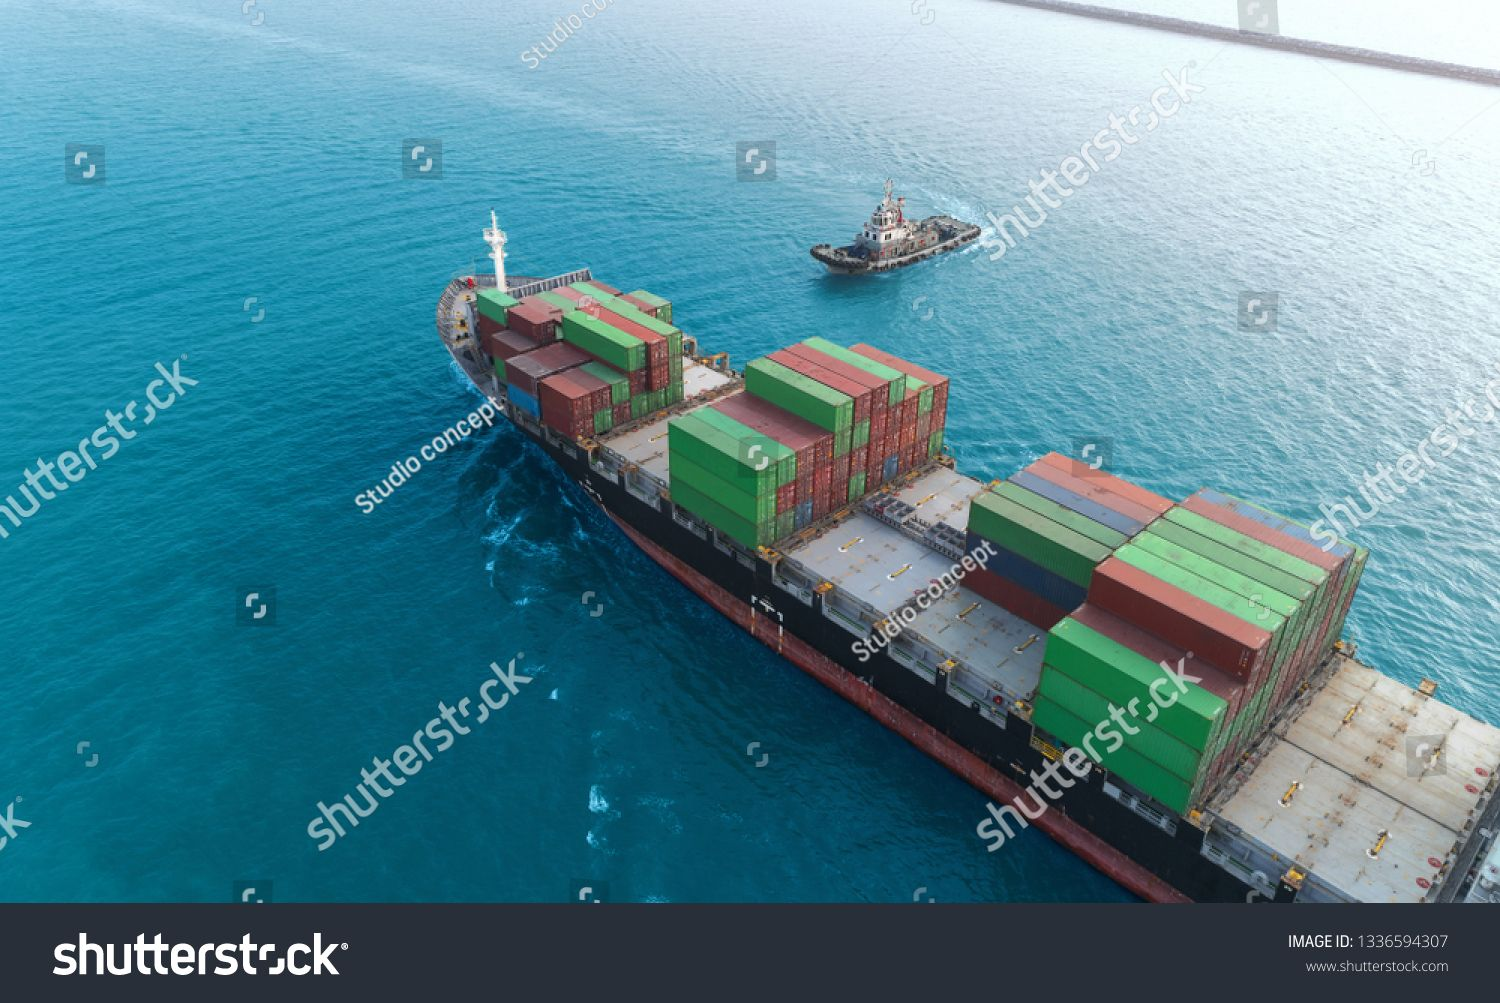 Aerial view Tug Boat come for drag Container ship to Crane bridge at seaport for unload Container to Container warehouse at blue sea. Logistics business, import export, shipping or transportation. #Sponsored , #affiliate, #ship#Container#Crane#seaport